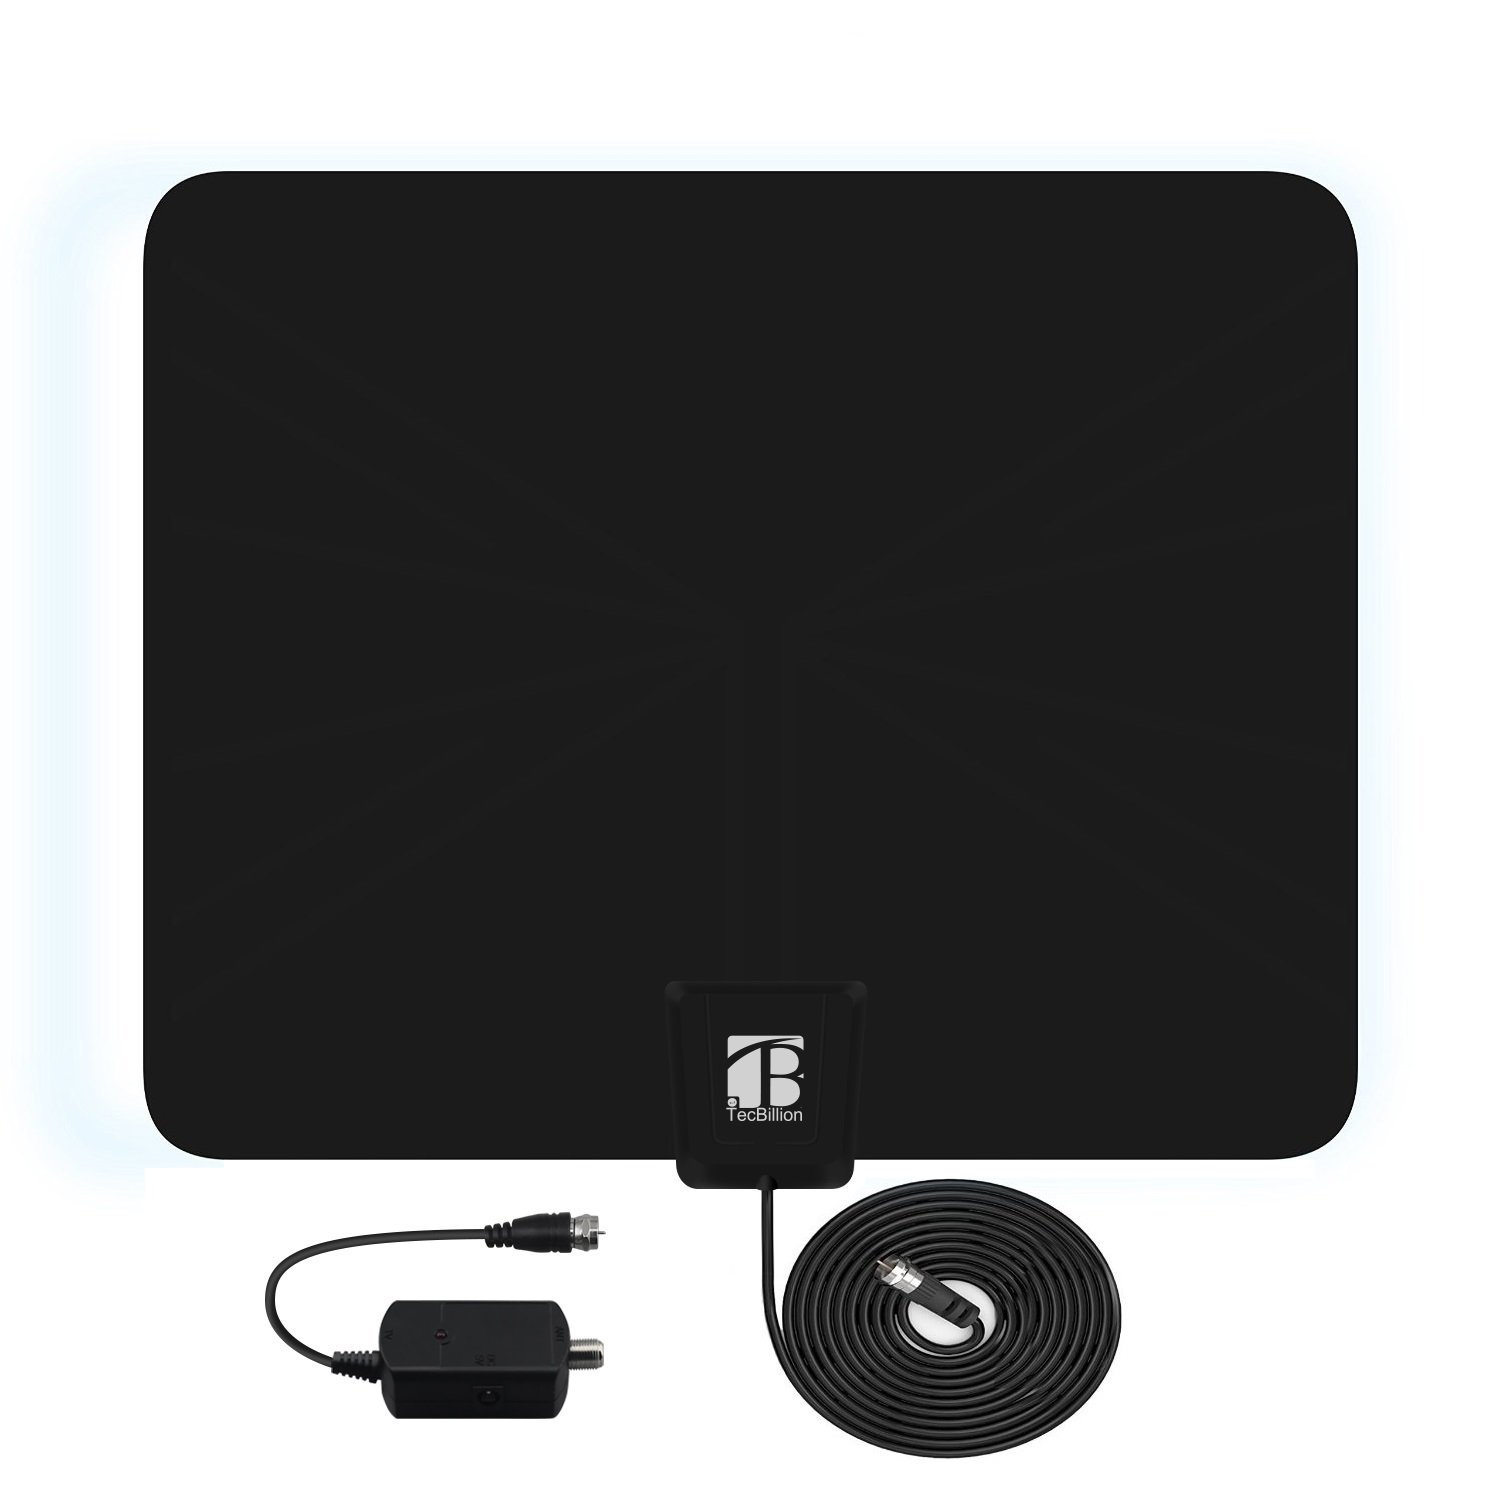 TecBillion 30-50 Mile Range Flat HDTV Antenna with Detachable Amplifier- Flat and Super Thin, Digital 1080P TV Antenna with 15ft Copper Braided Coax Cable, Home and Car Applicable